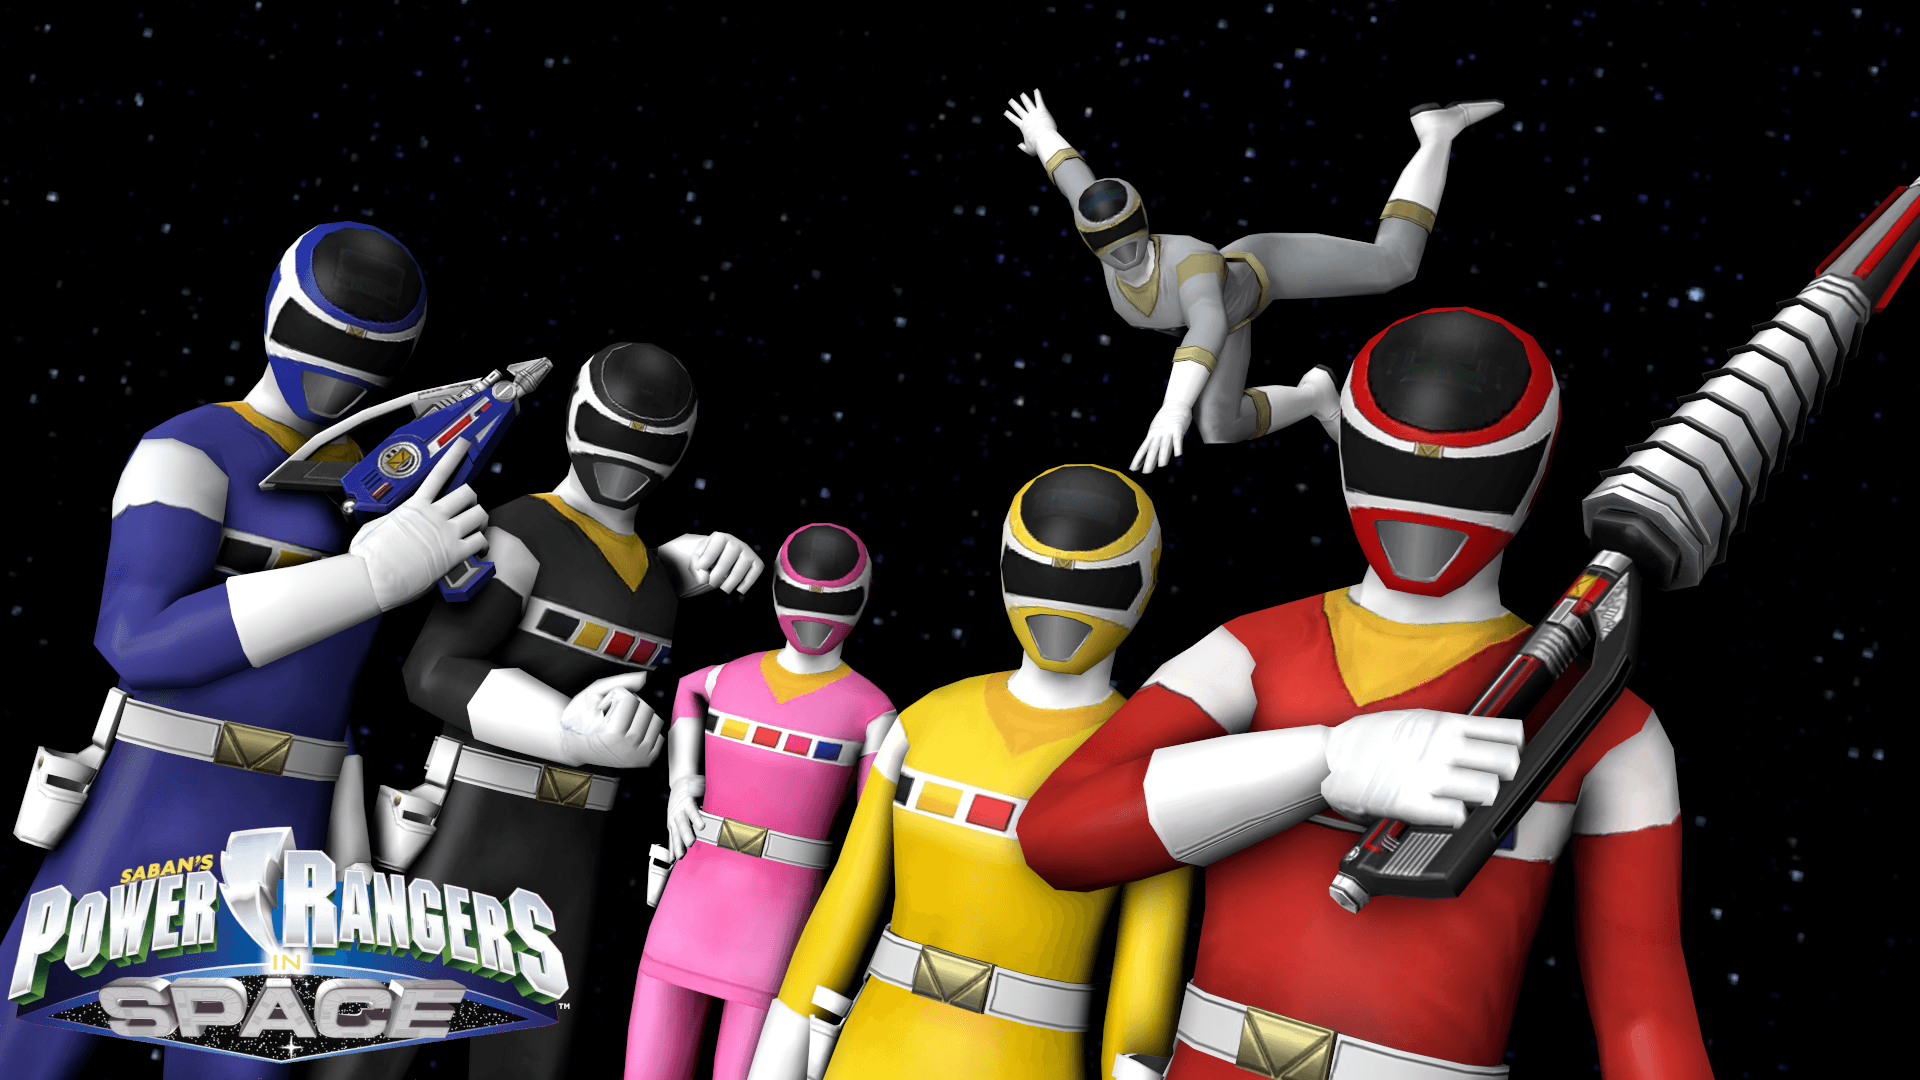 Power Rangers Space Wallpapers Wallpaper Cave